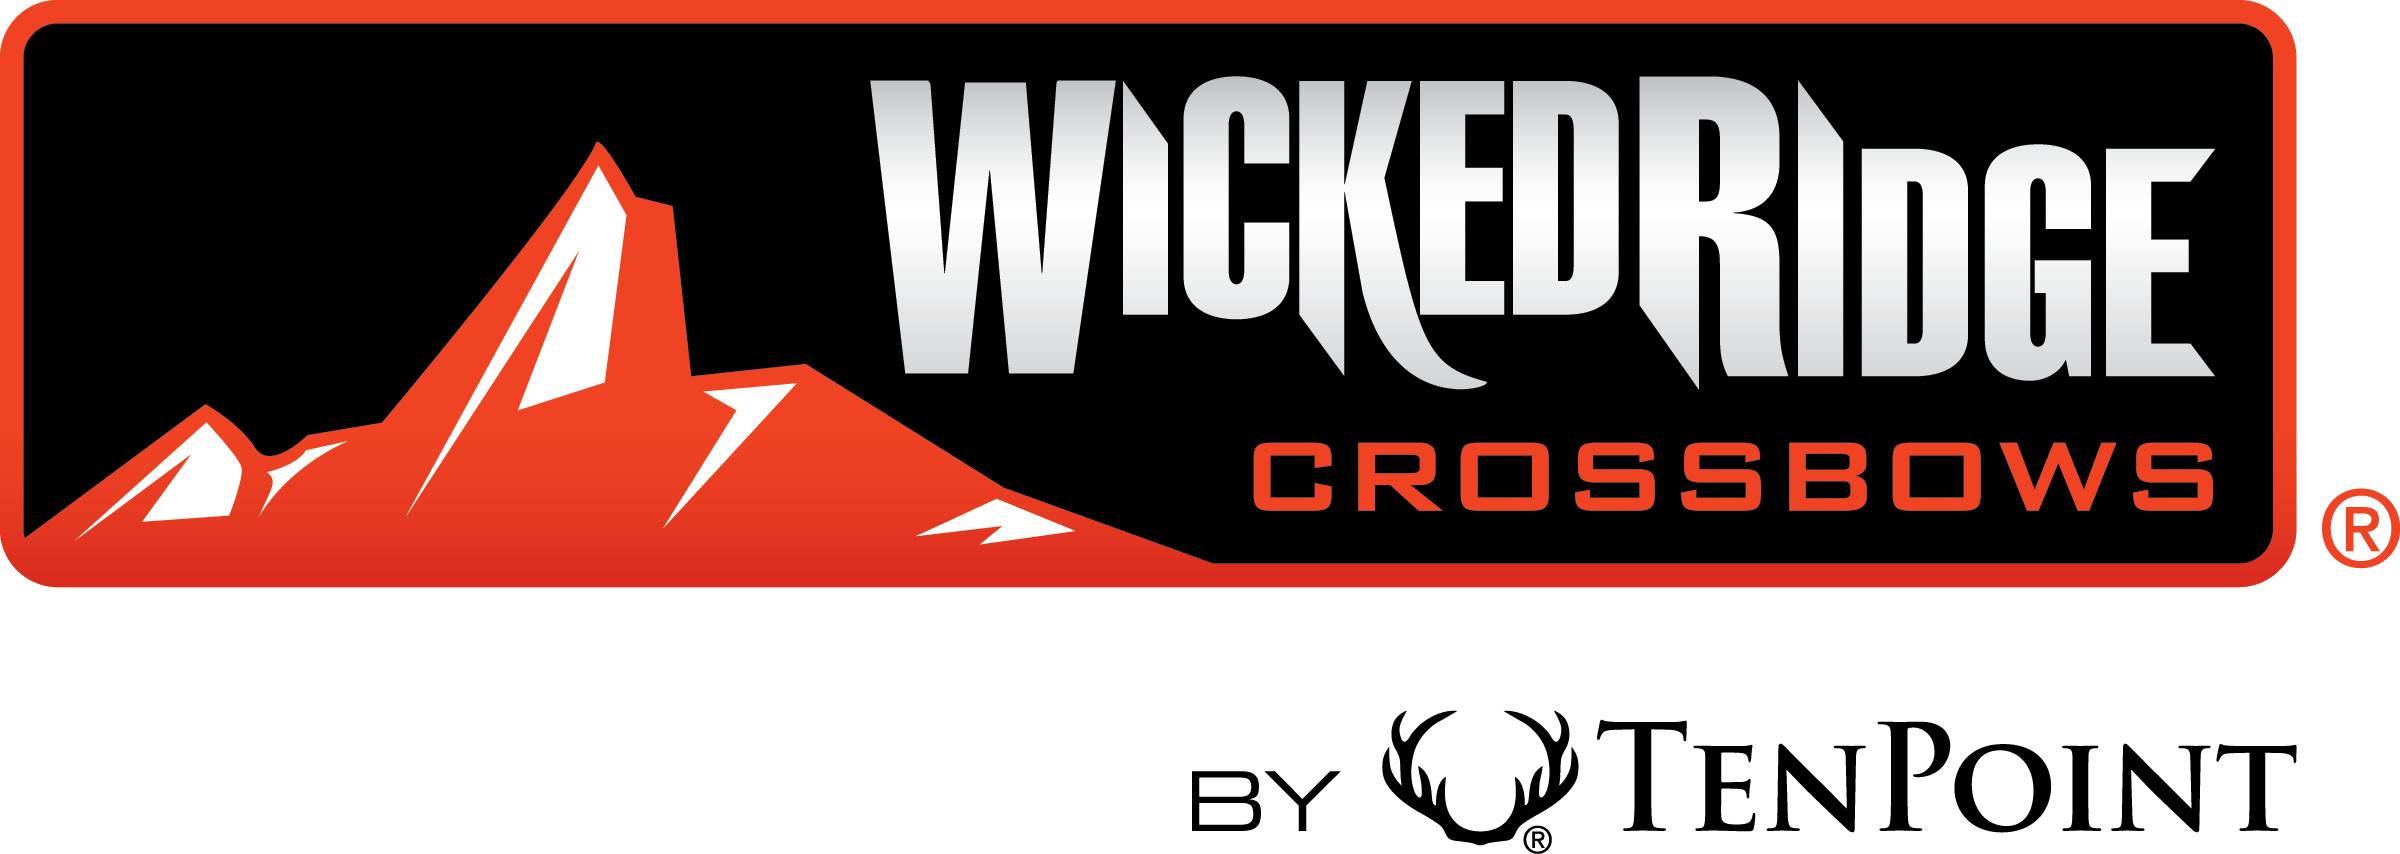 Horizontal wicked ridge logo